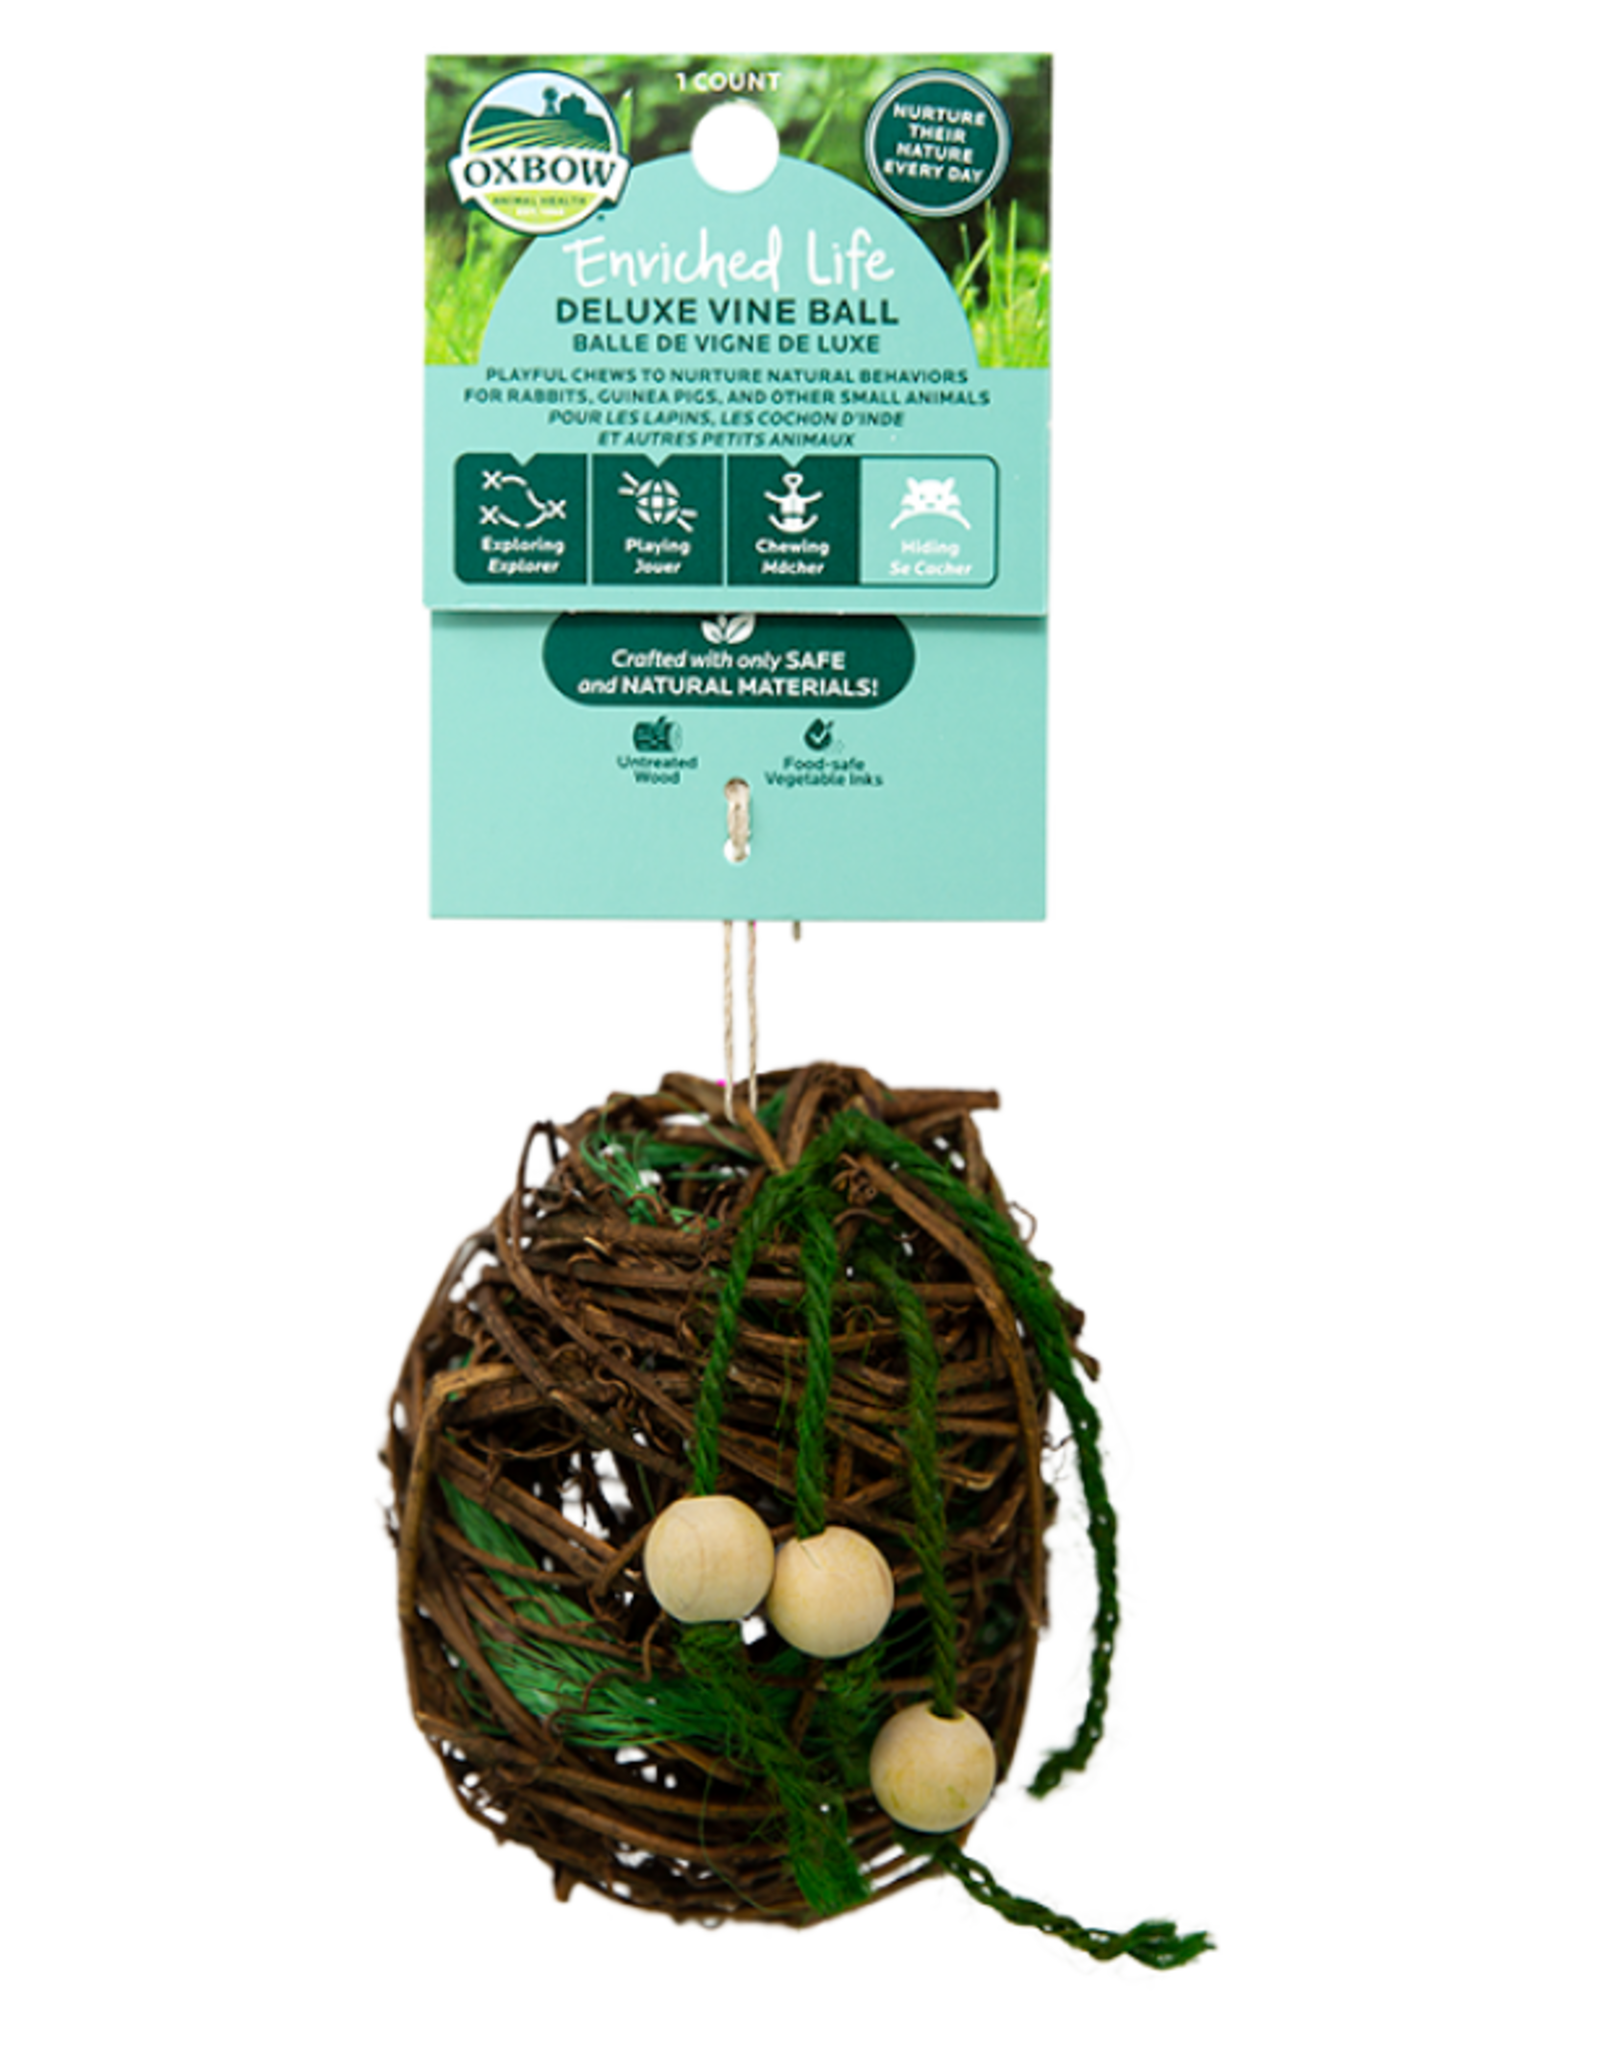 Oxbow OXBOW Enriched Life Deluxe Vine Ball